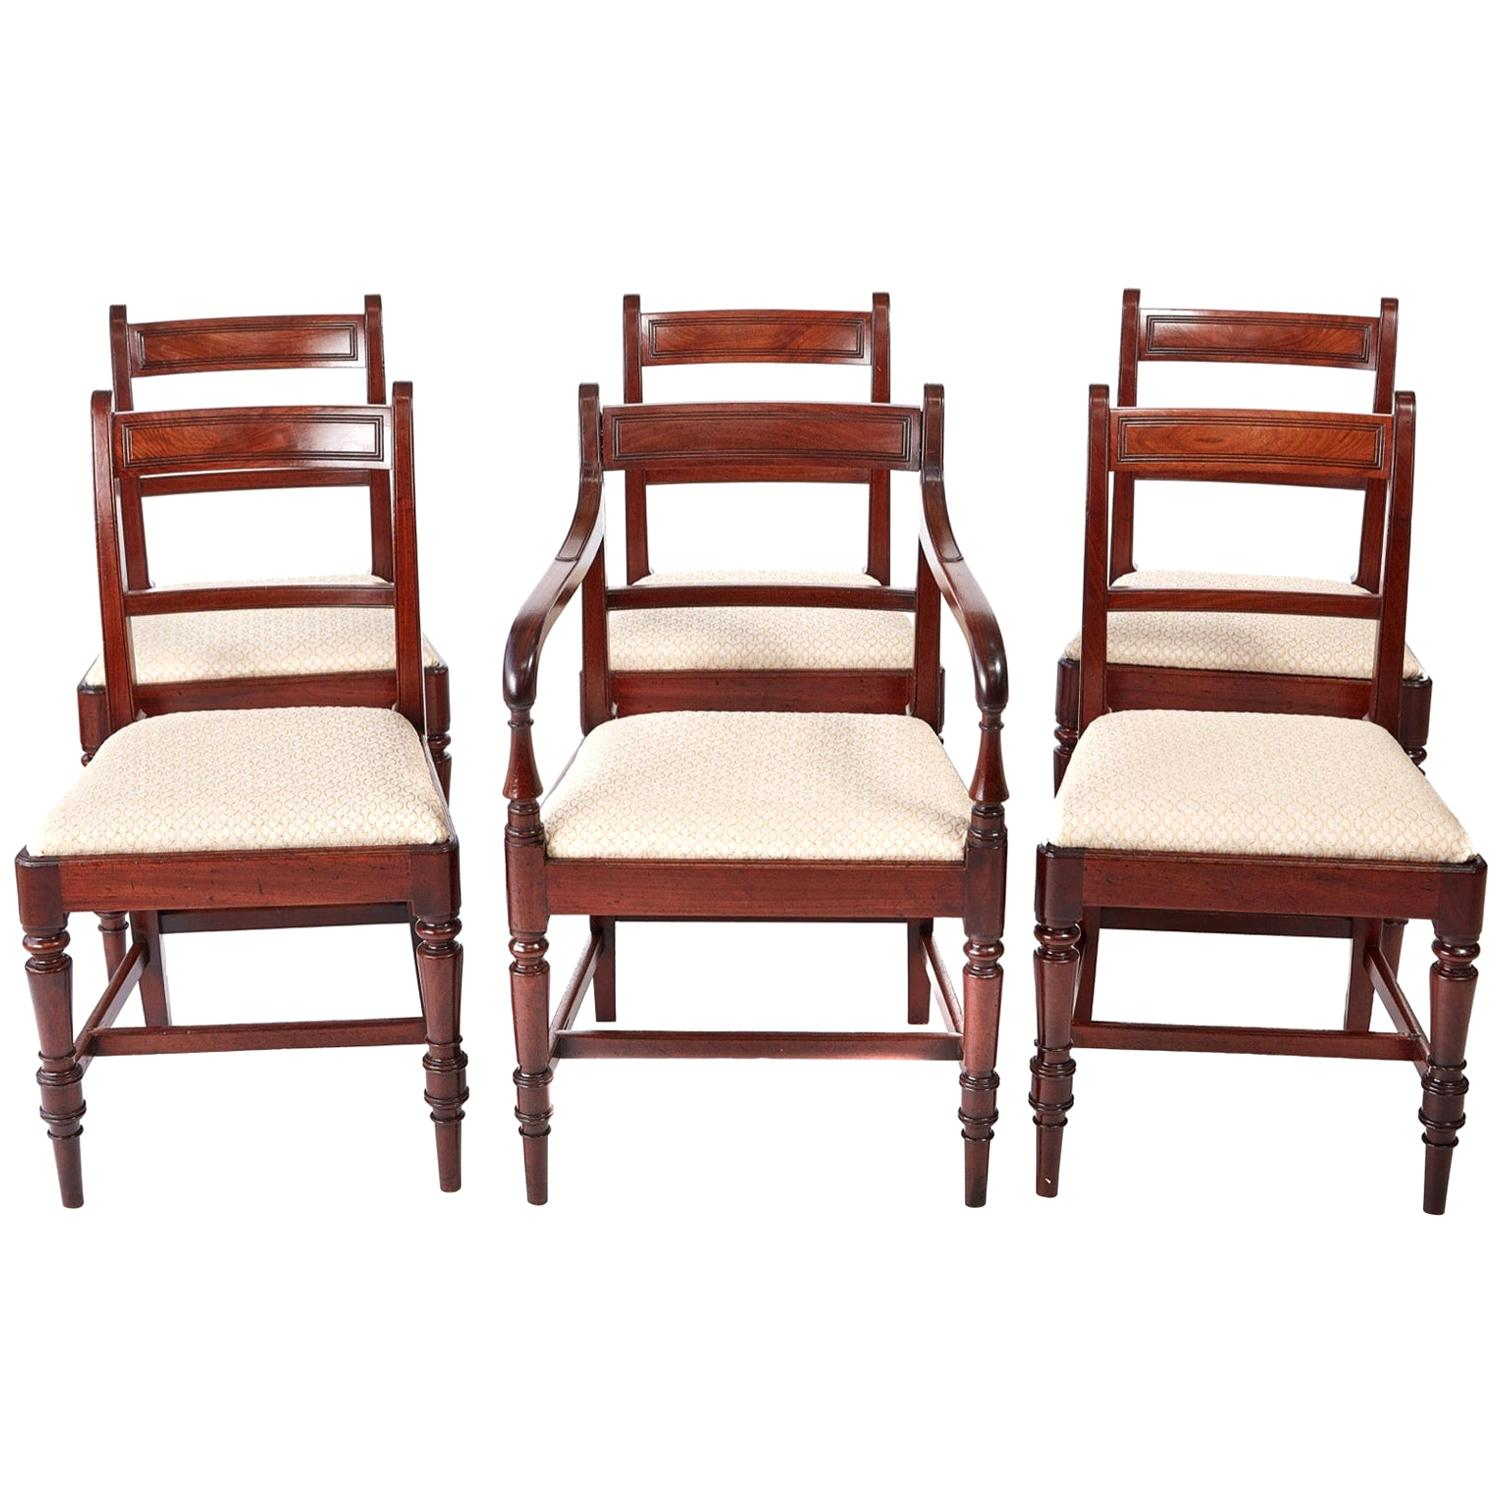 Fine Set of 6 George III Antique Mahogany Dining Chairs